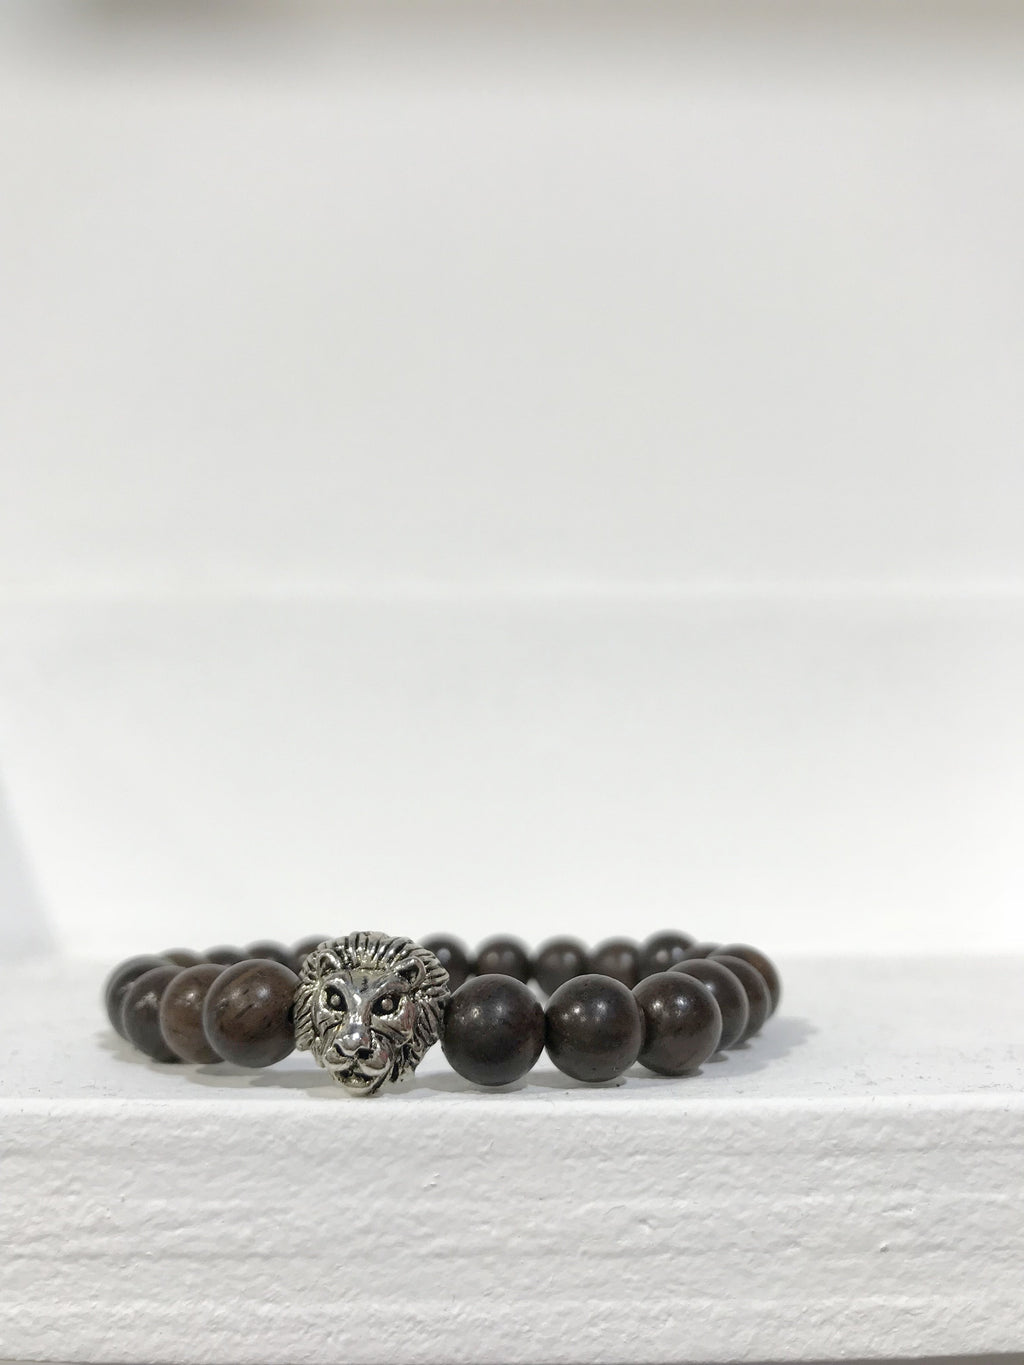 LION COLLEXION Mens Bracelet - Dark Wood